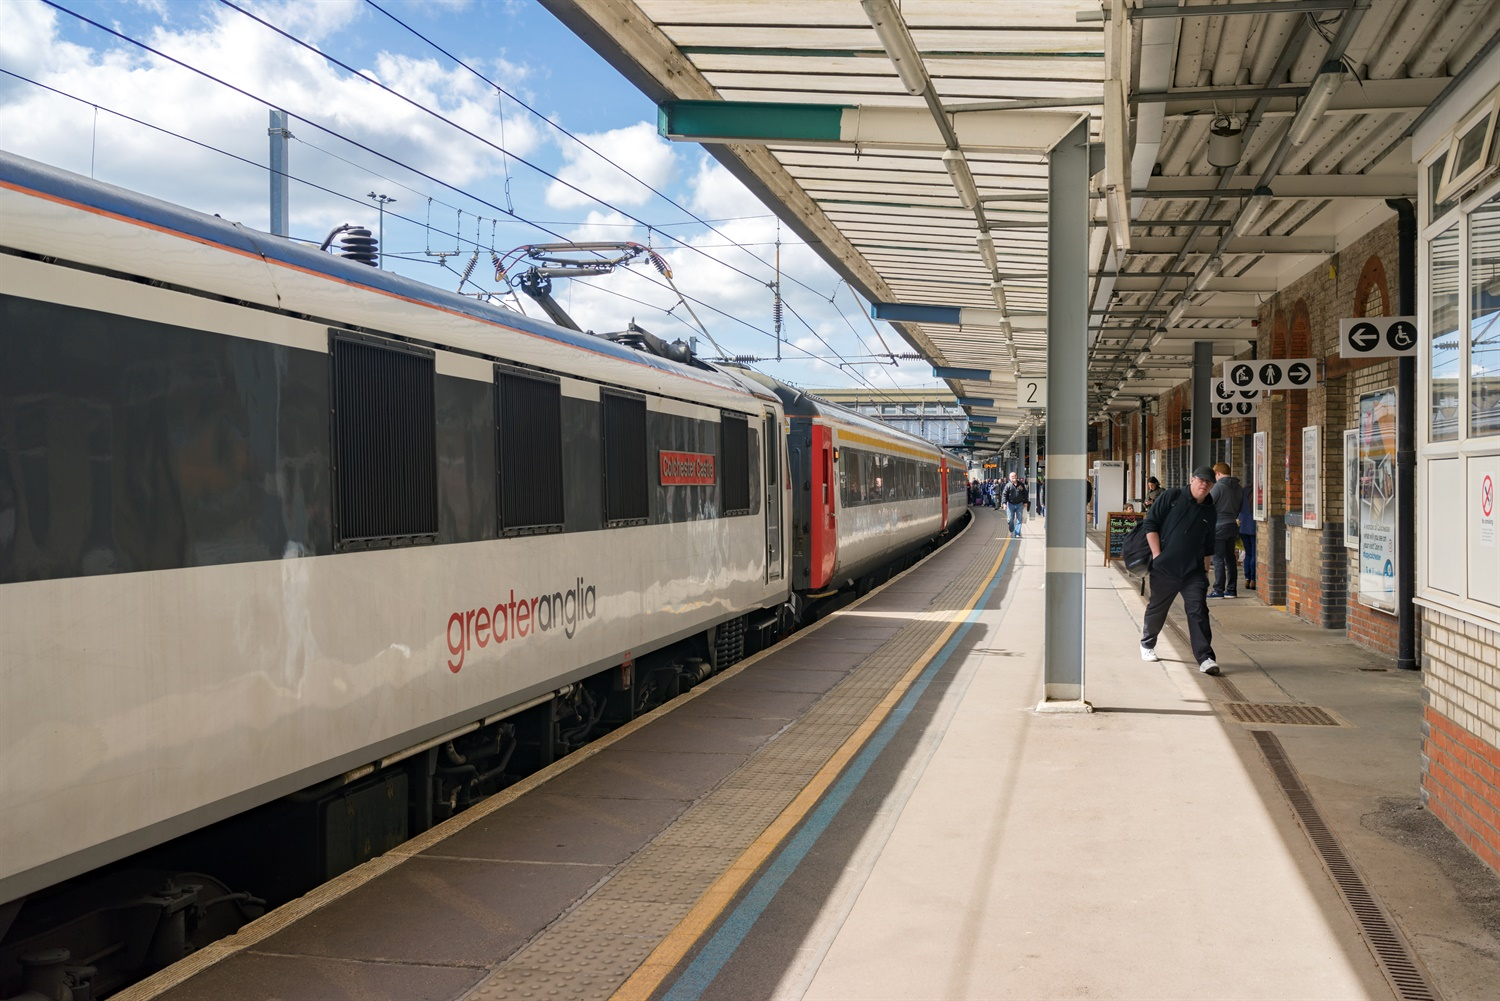 Greater Anglia employs extra Land Sheriffs to improve safety and security for passengers